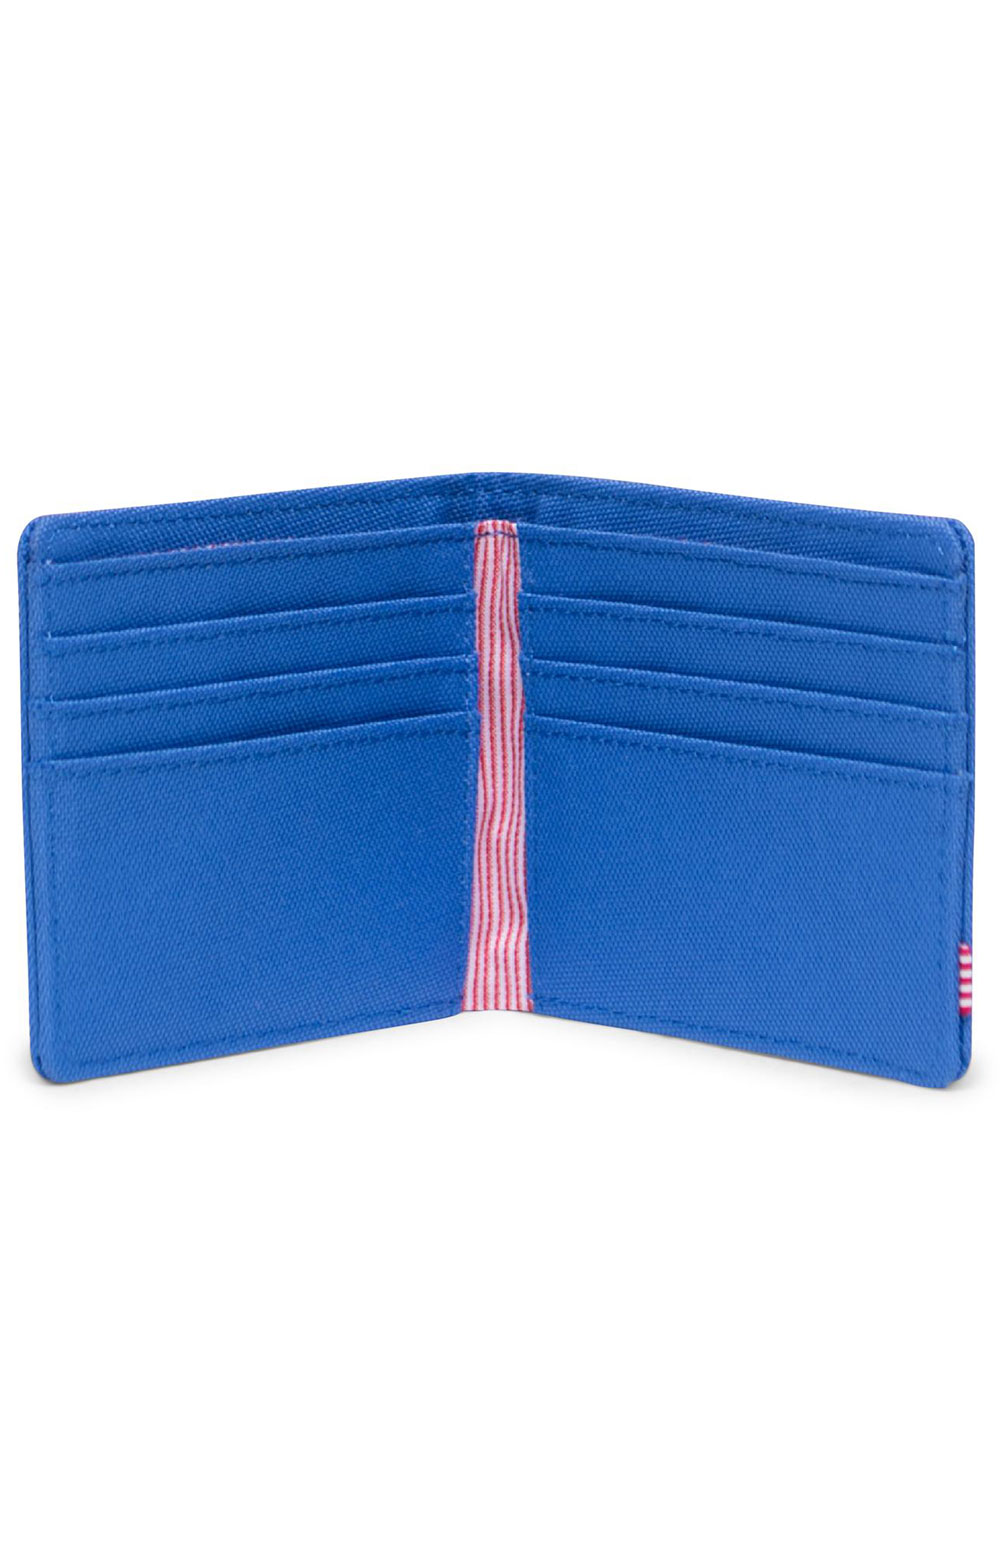 Roy Wallet - Amparo Blue/Black 3